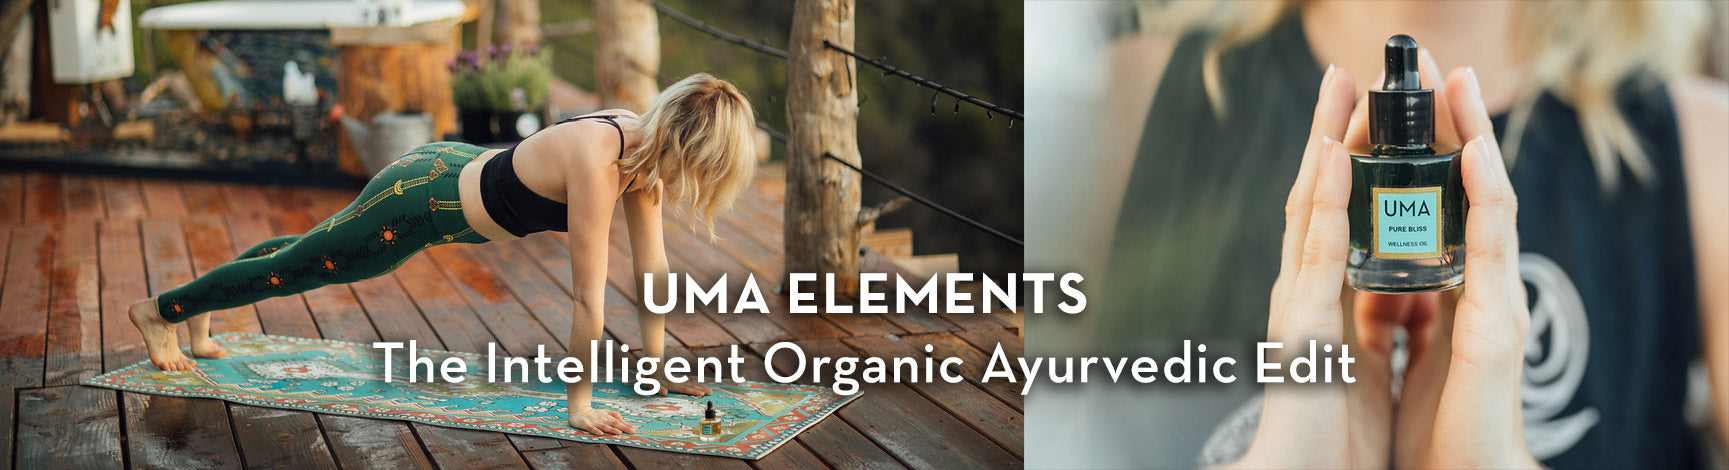 Uma Elements, blog